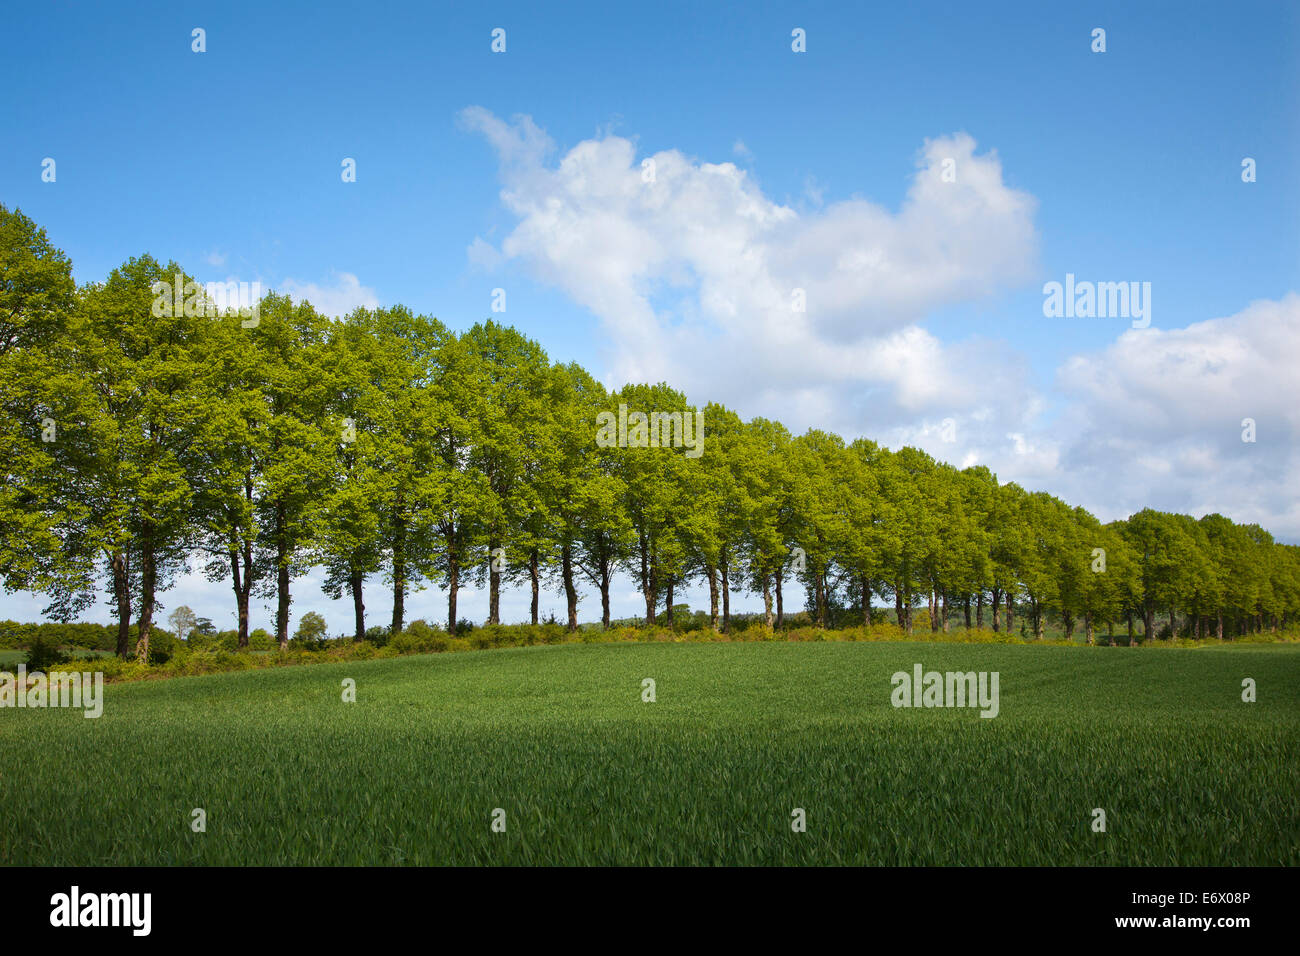 Alley of lime trees, Holsteinische Schweiz, Schleswig-Holstein, Germany - Stock Image